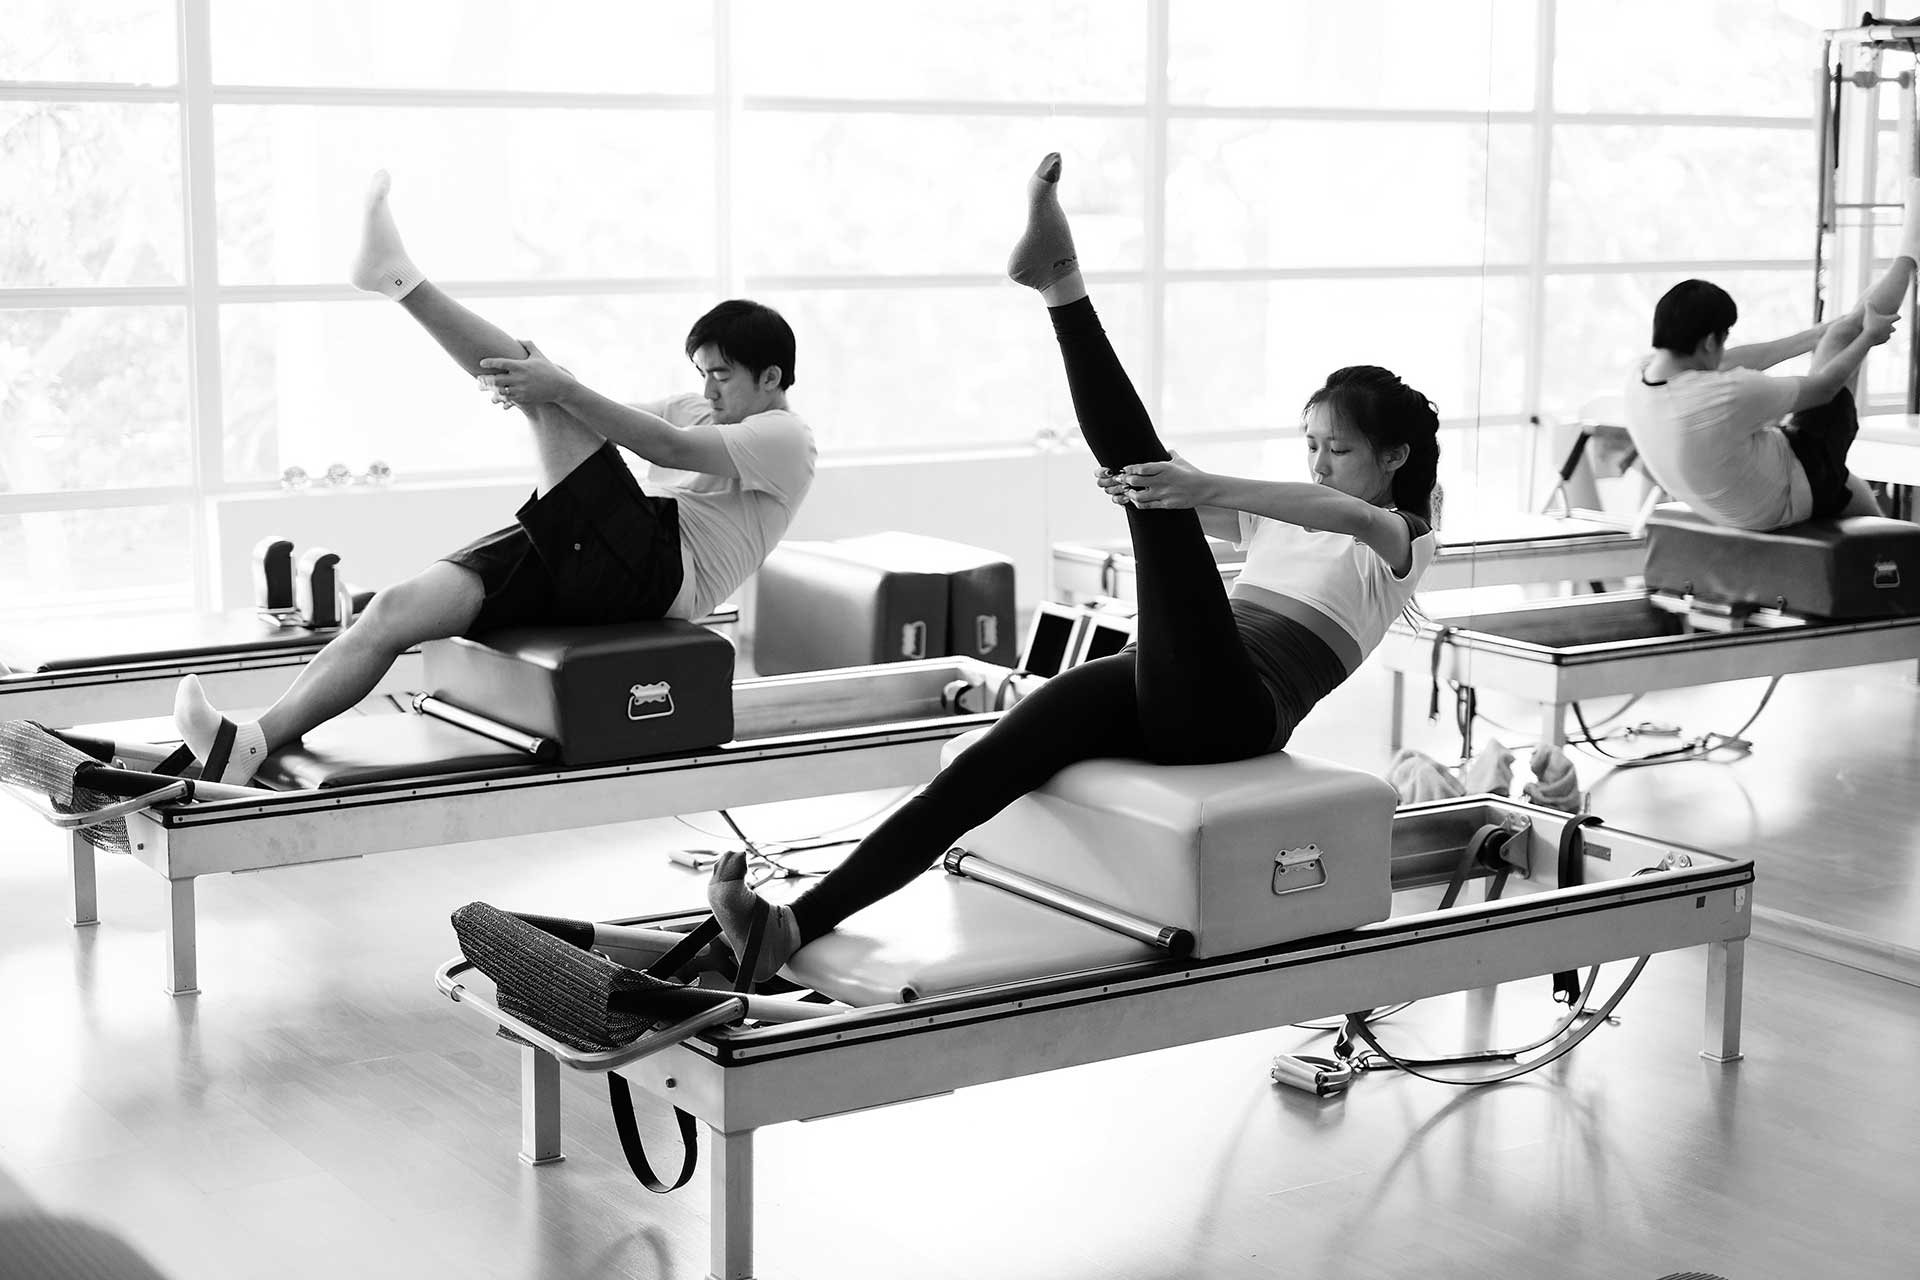 pilates studio in singapore - slider 11